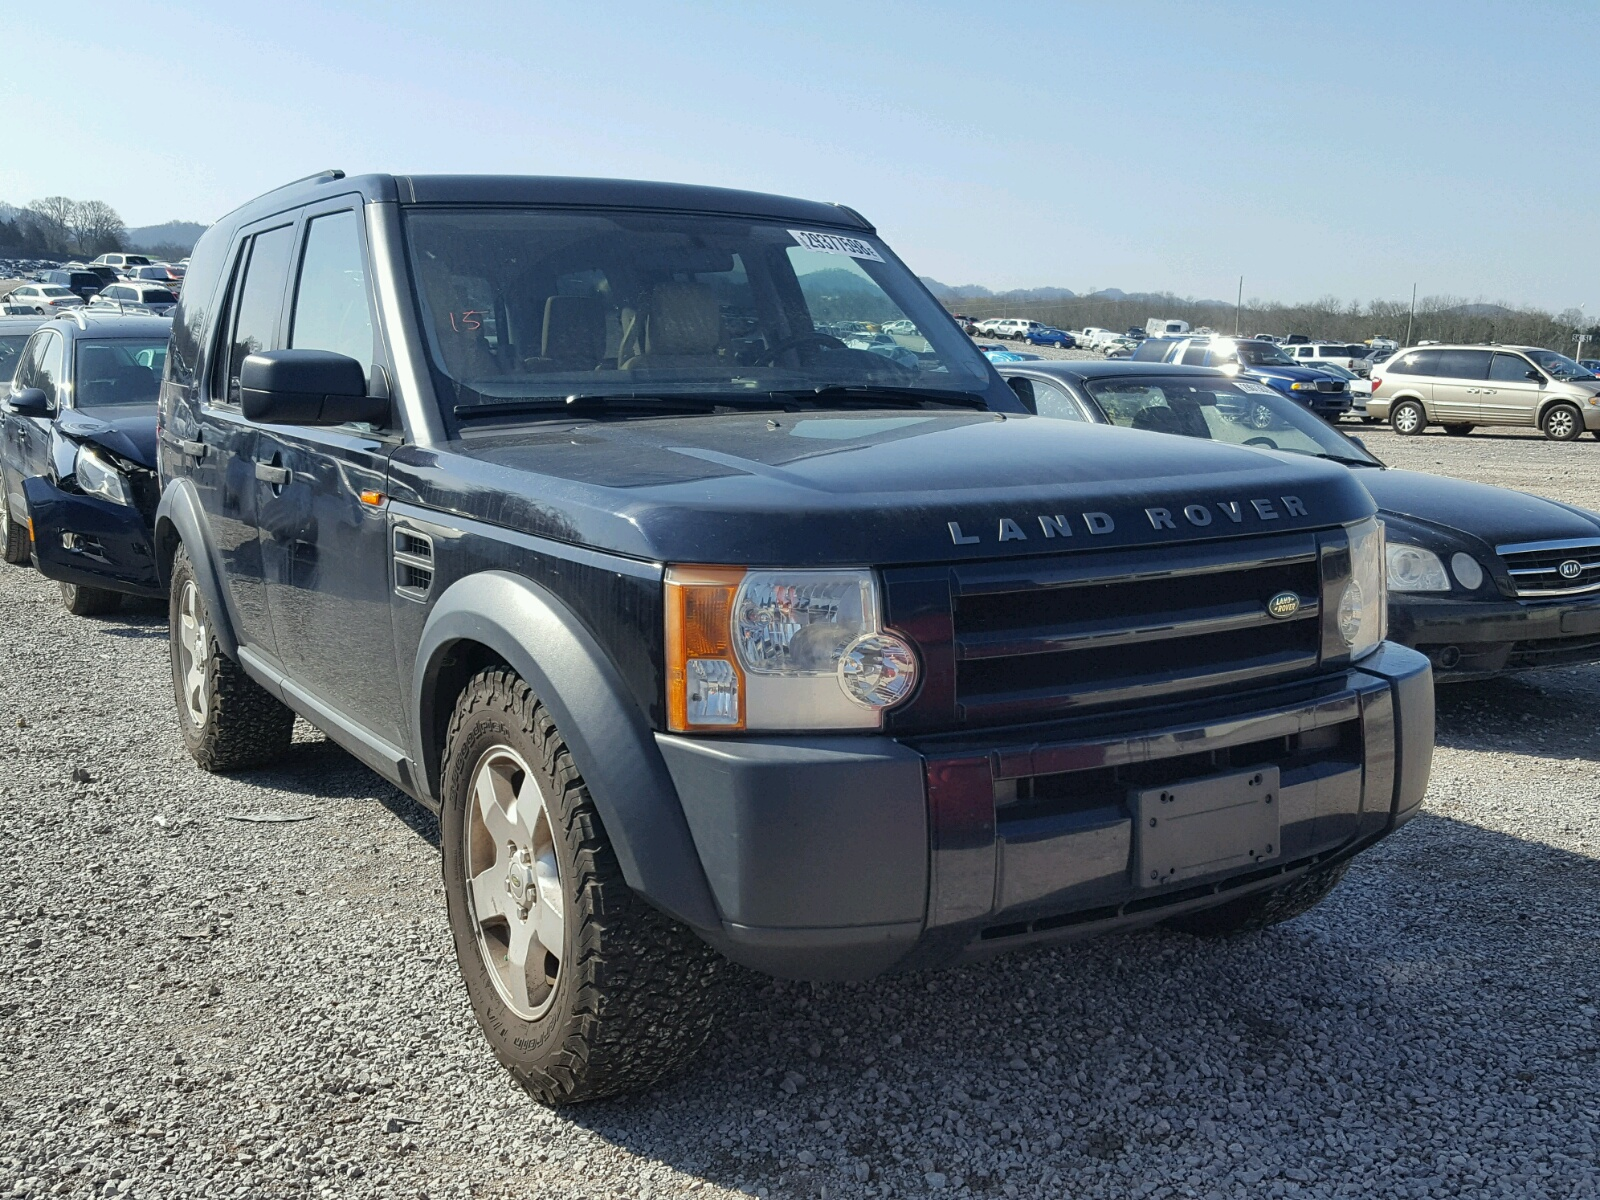 certificate md of en dc landrover hse auto black title online carfinder lot land for sale auctions washington rover copart on in